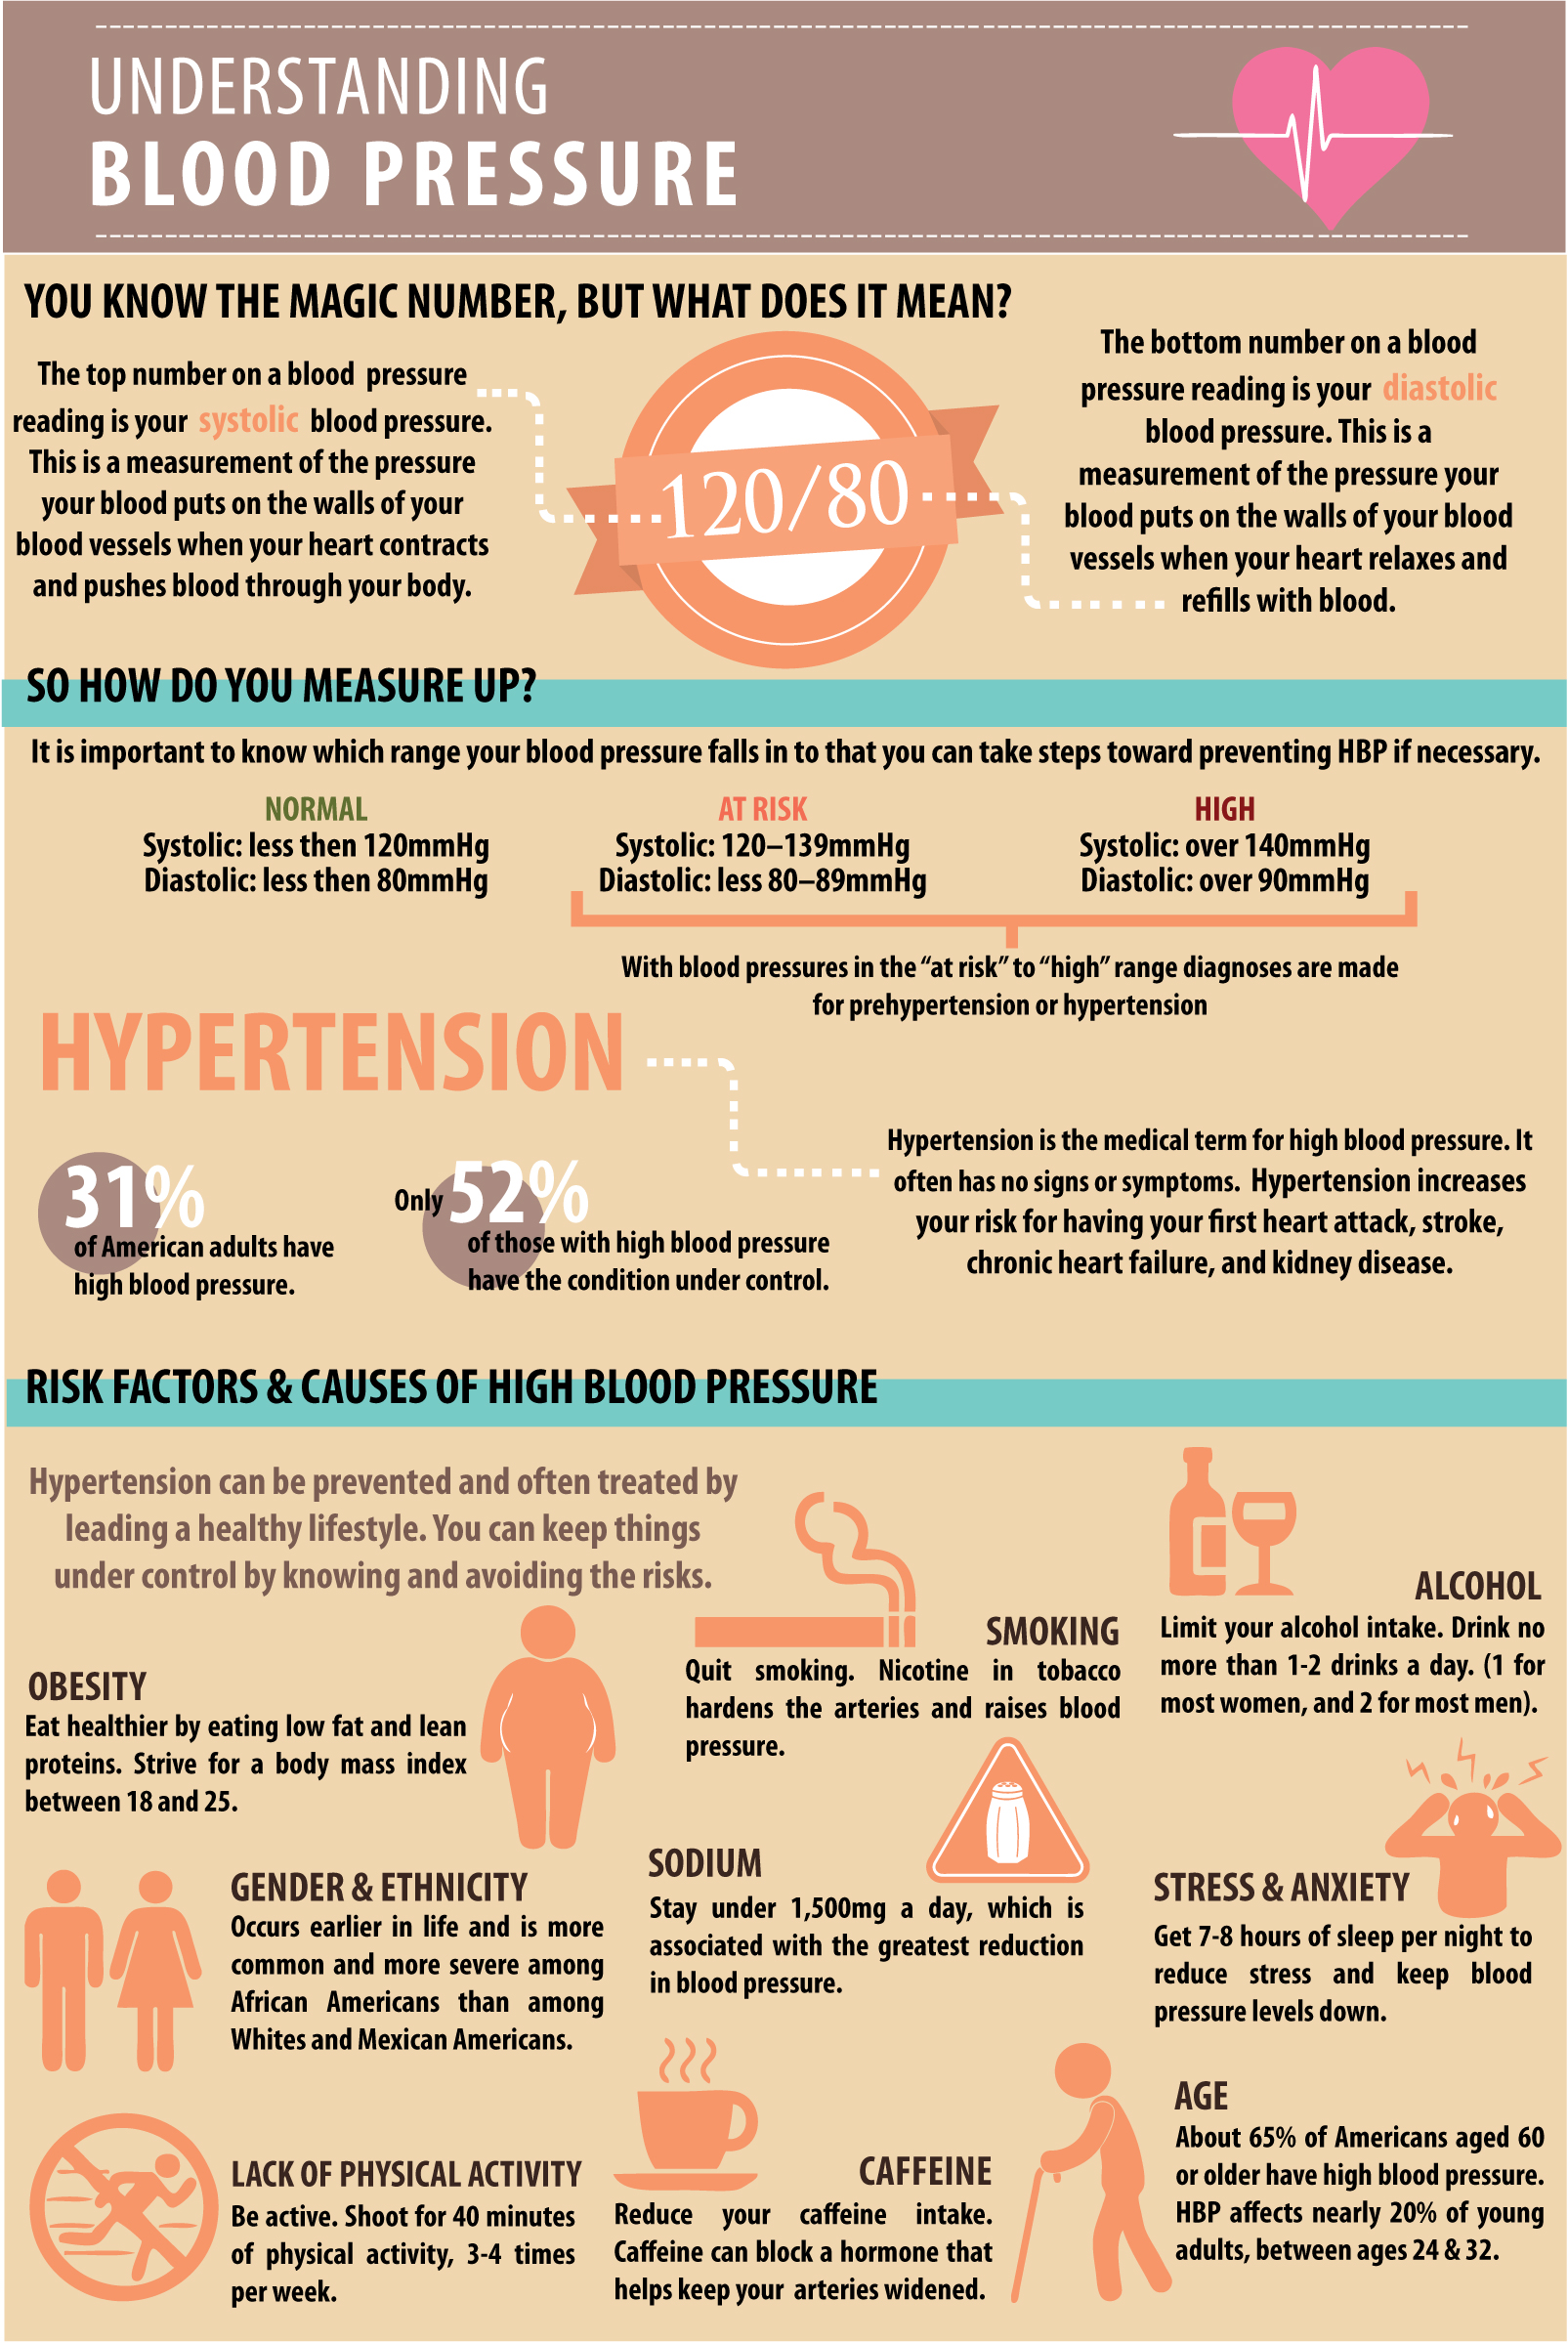 Blood-Pressure-Infographic 2.jpg